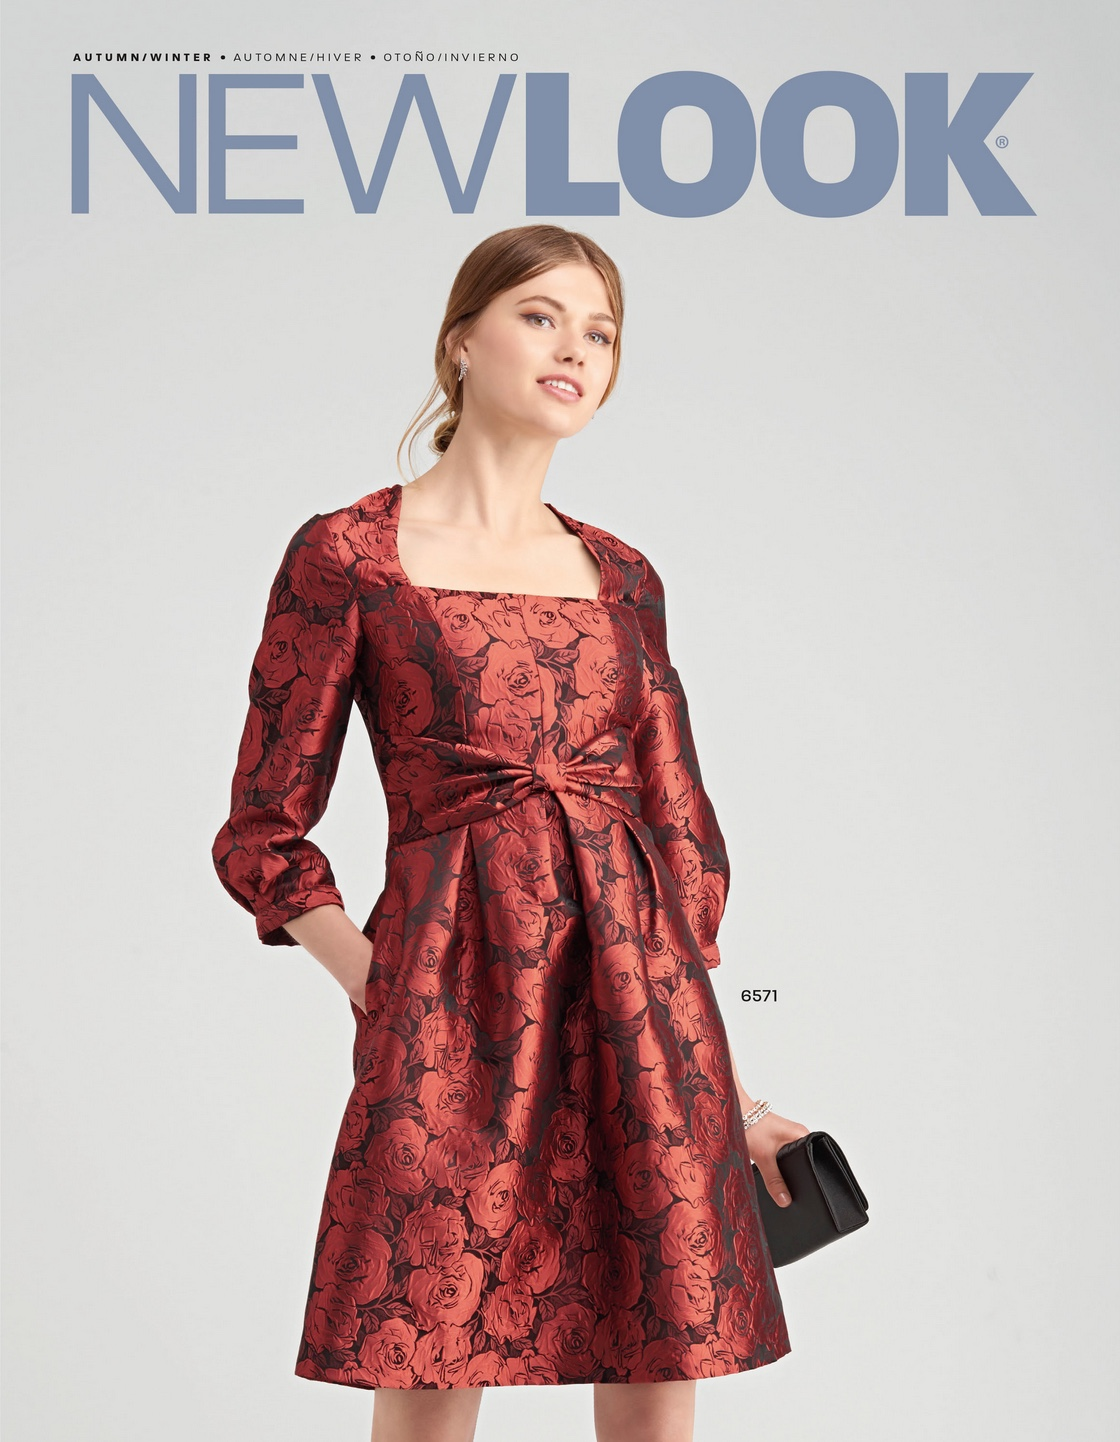 New Look catalogue cover 1808N.jpeg